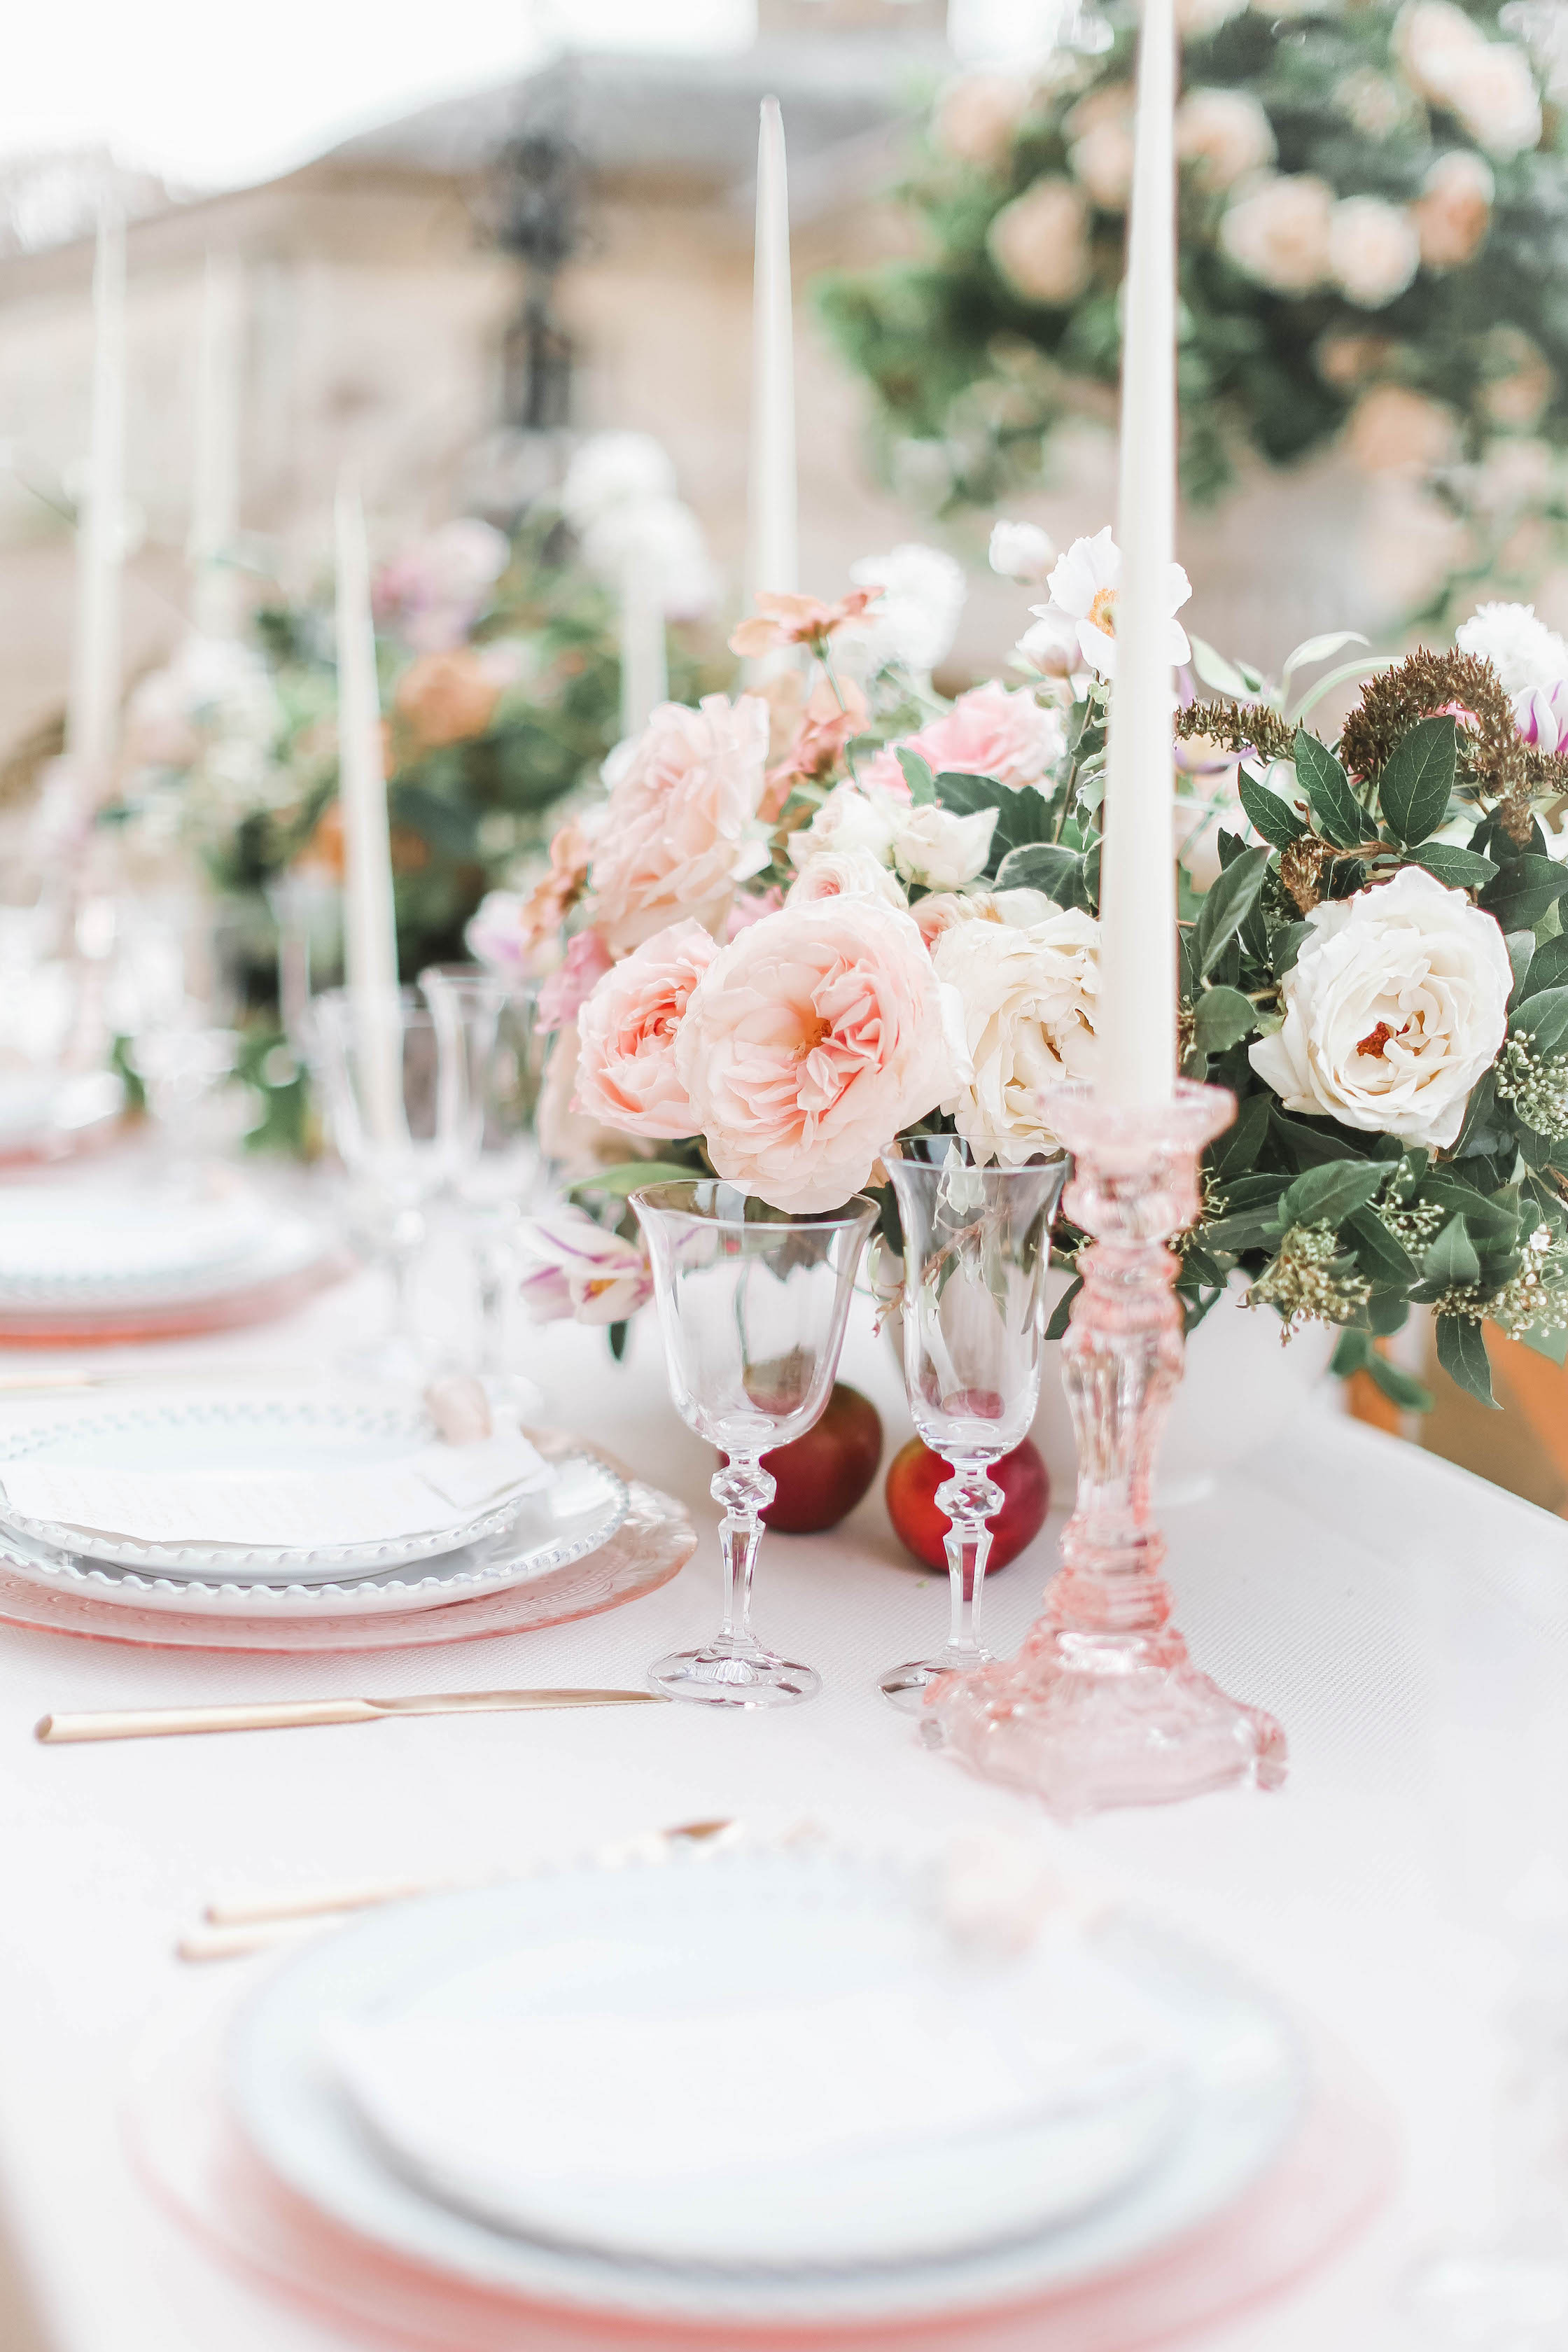 Rose Table Wedding Centrepieces - Wild Anemones - Tapered Candles